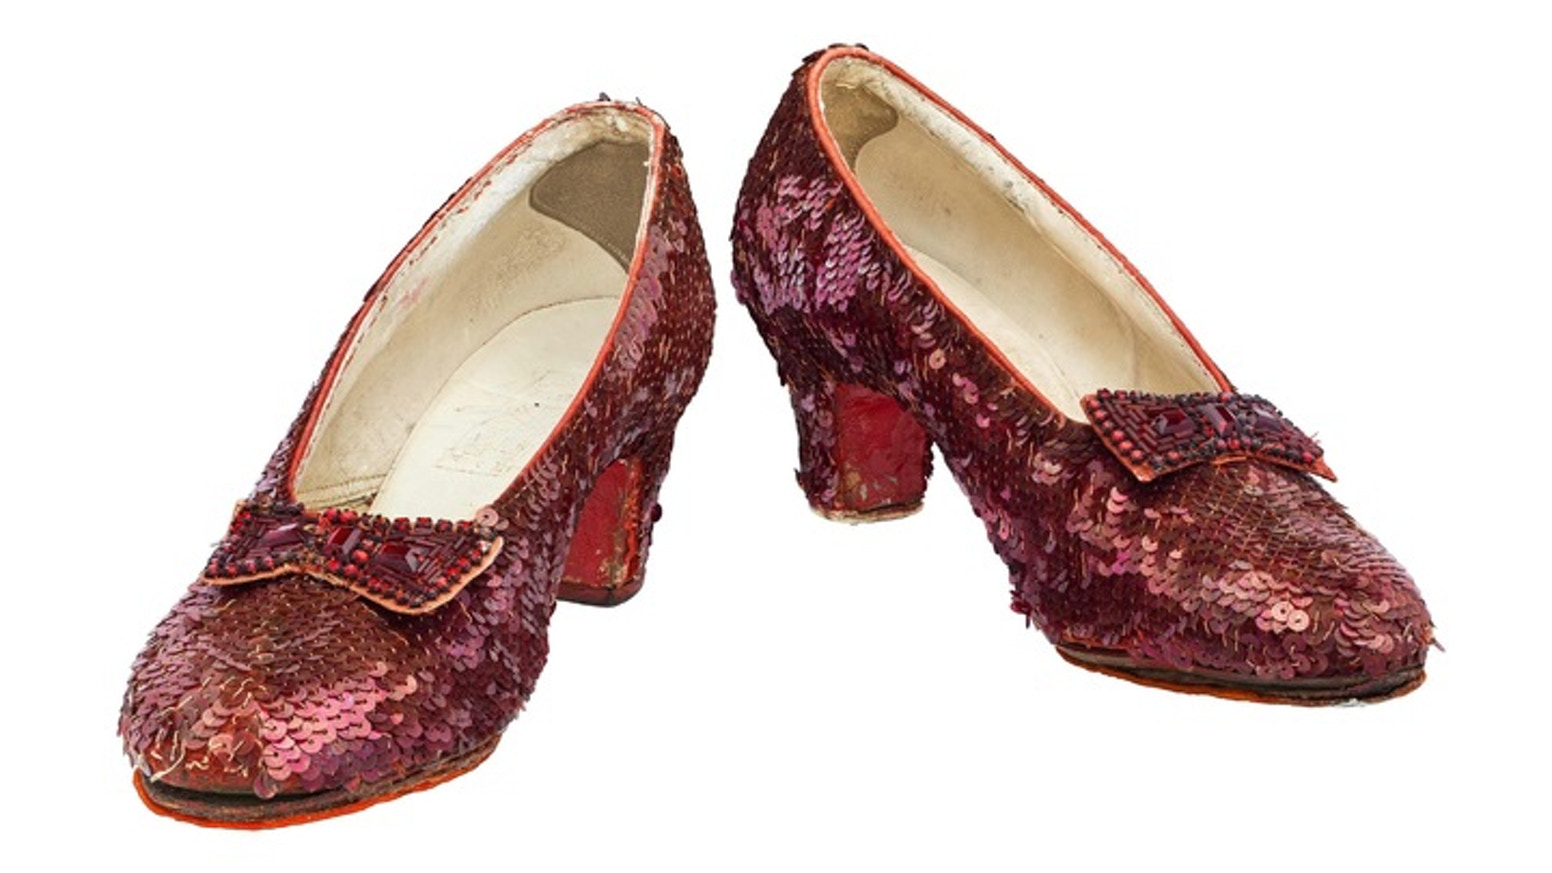 conserve dorothy s ruby slippers by smithsonian institution